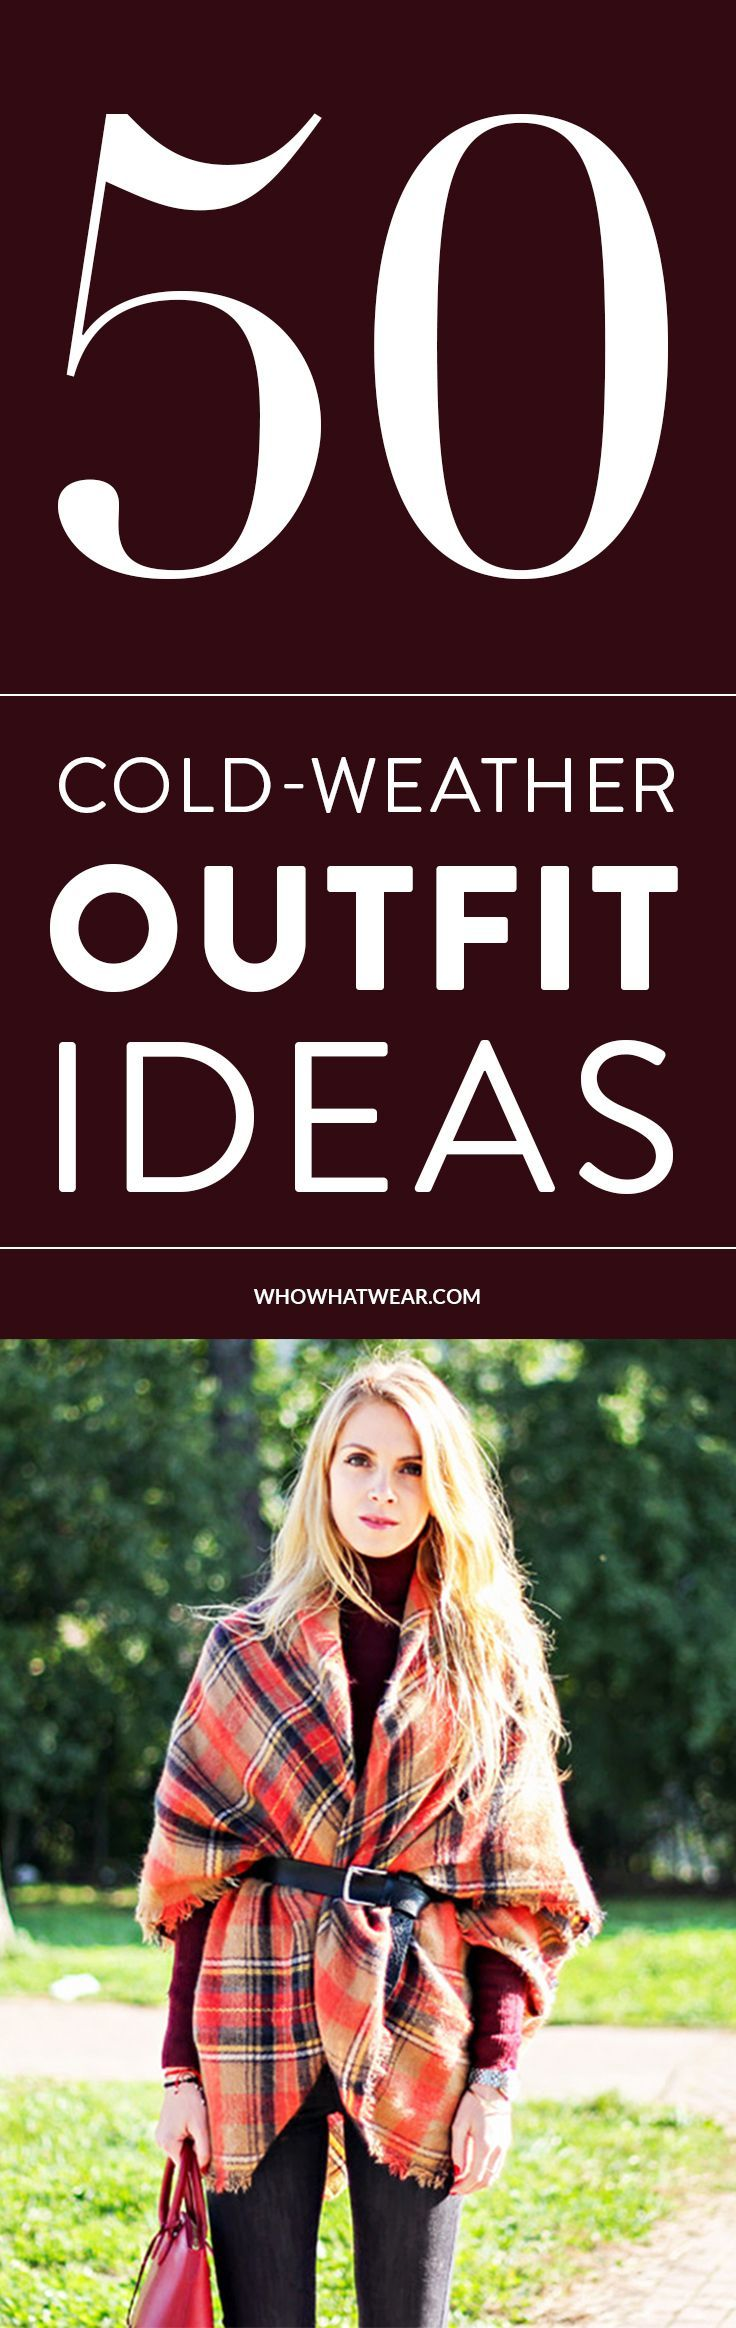 Art On Sun: 50 Awesome Outfit Ideas for Cold Weather